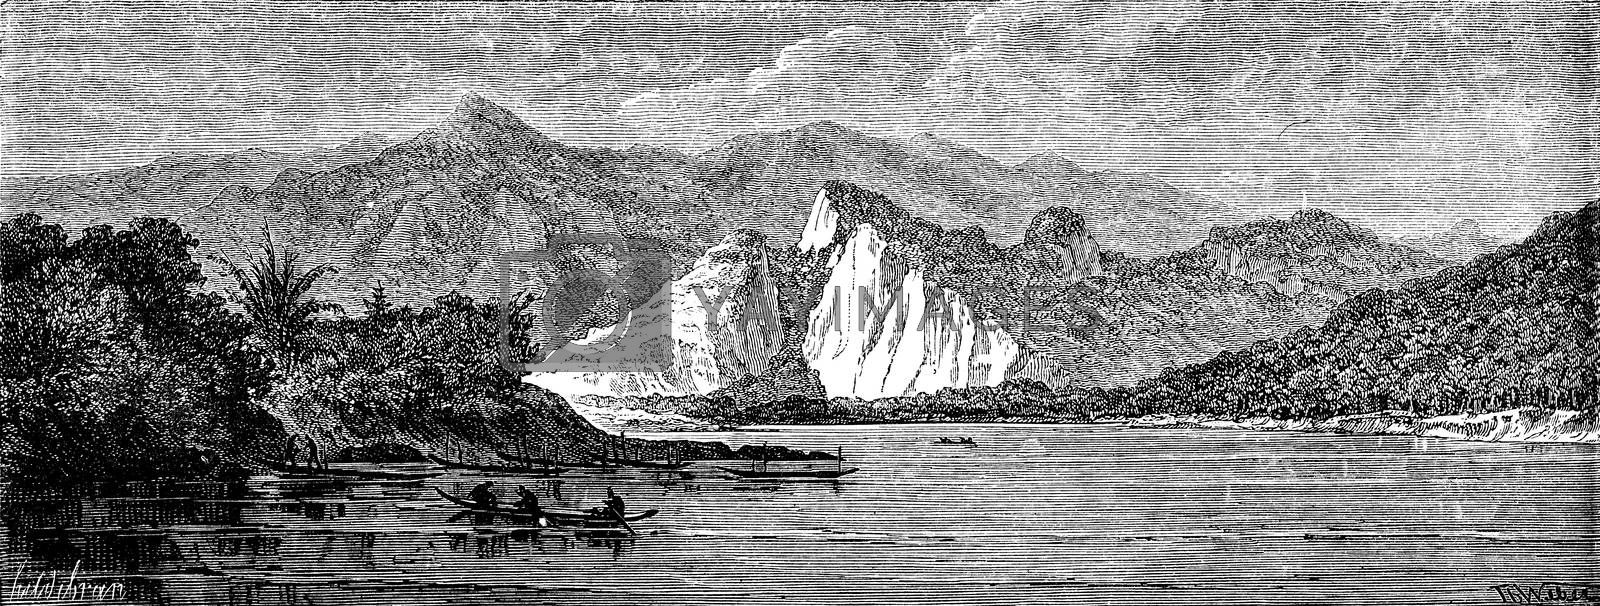 View of the river before reaching the Nam Hou, vintage engraved illustration. Le Tour du Monde, Travel Journal, (1872).